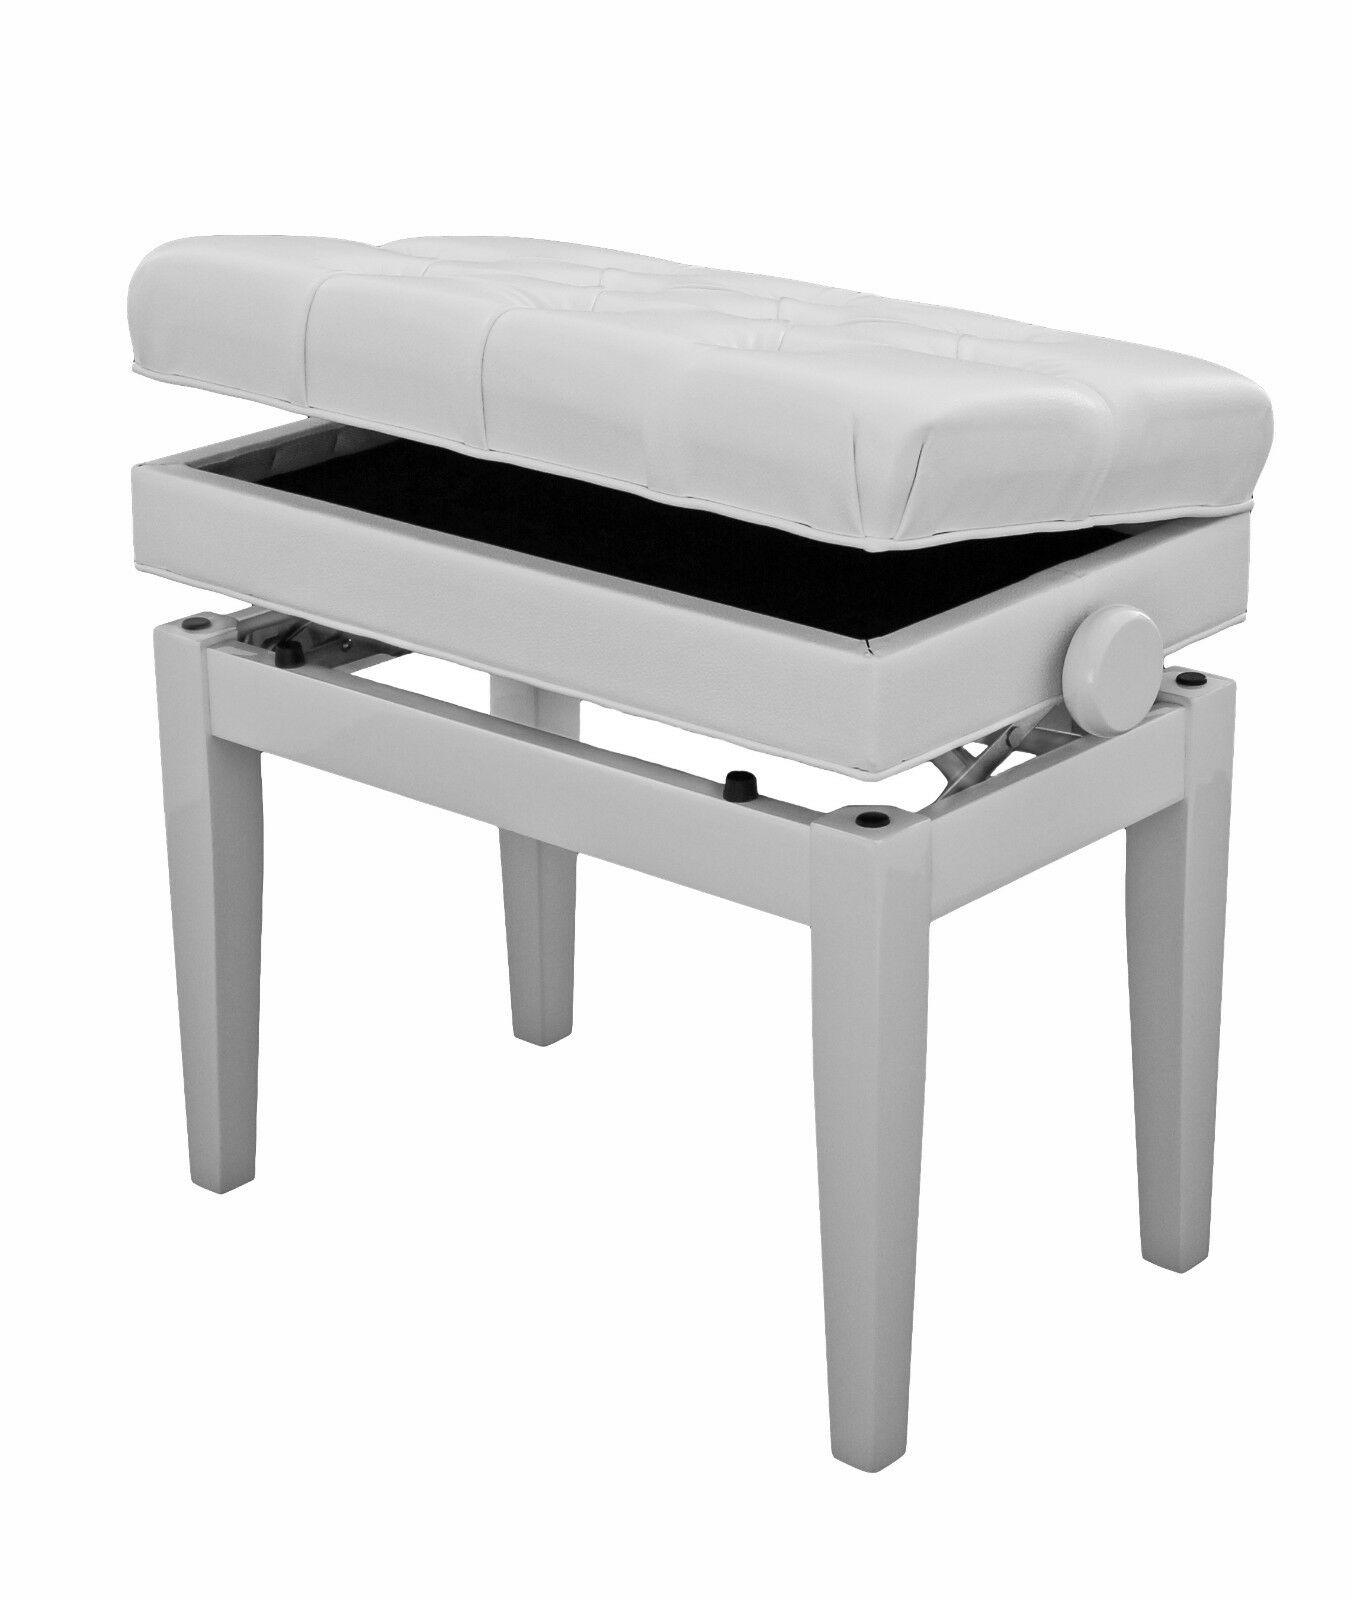 Fabulous Adjustable Piano Stool With Book Storage Polished White Steinhoven Symphony Short Links Chair Design For Home Short Linksinfo